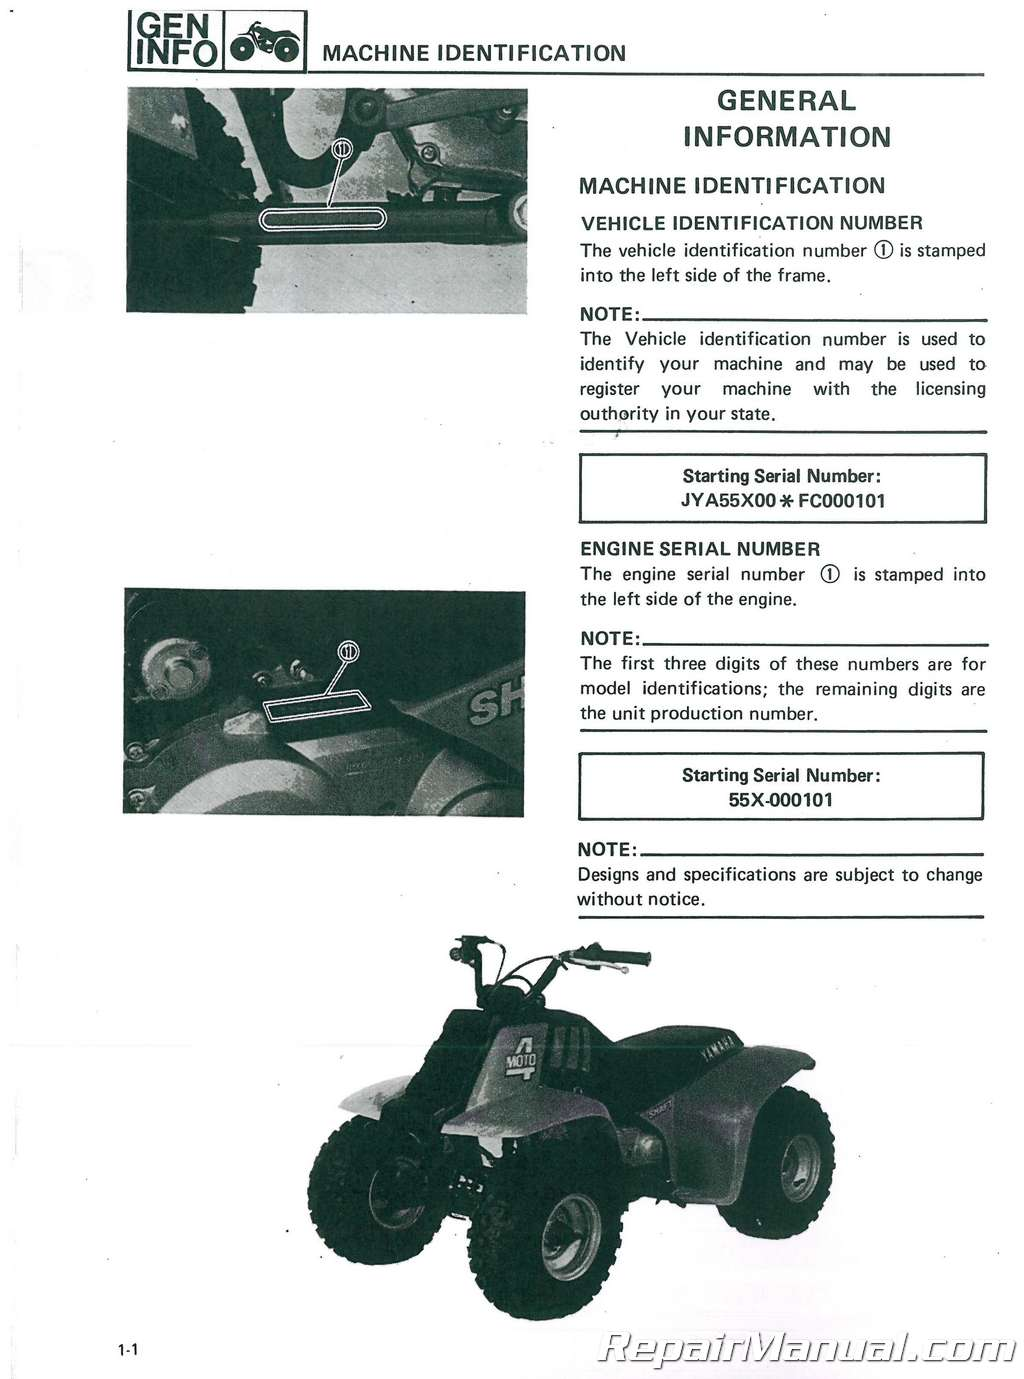 yamaha 5cmh service manual